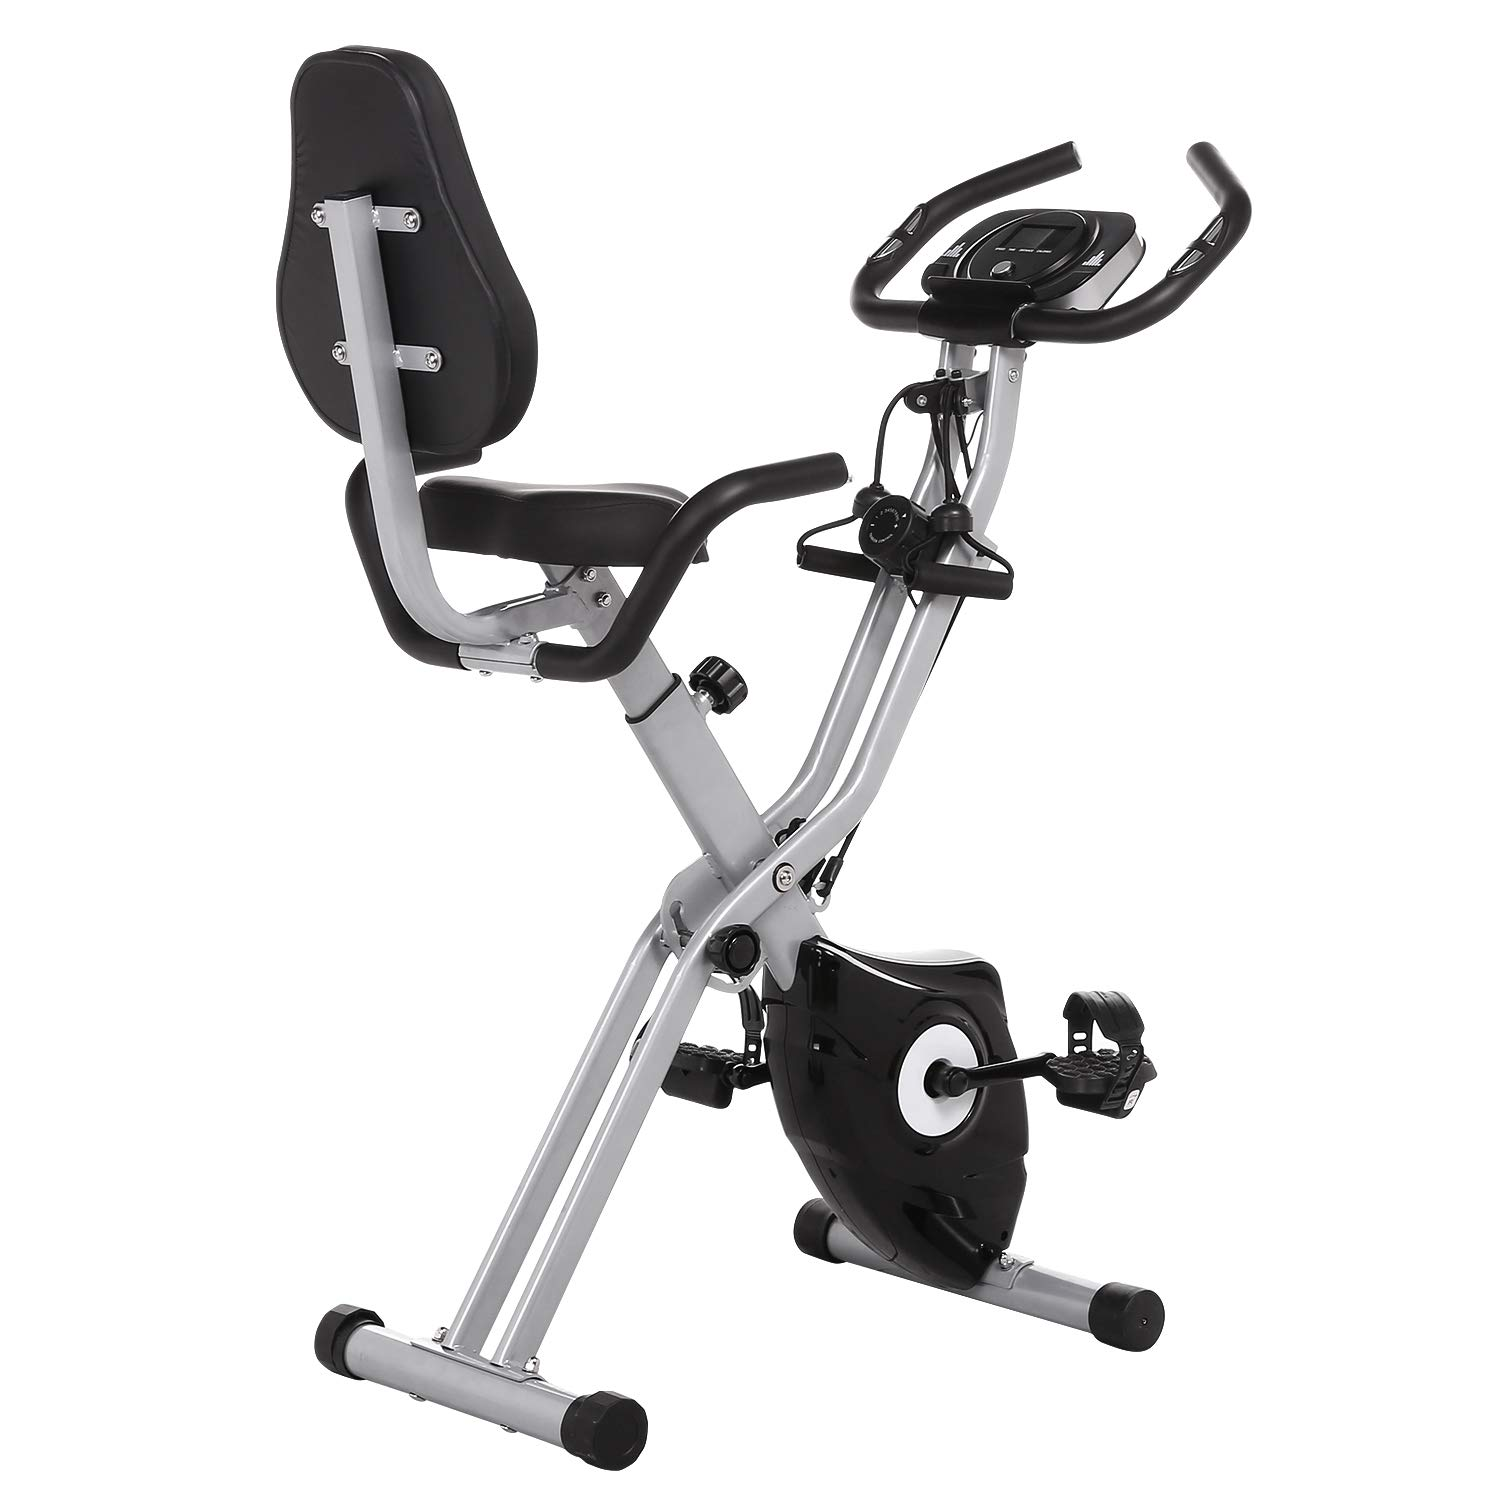 ANCHEER 2 in1 Folding Exercise Bike, Slim Cycle Indoor Stationary Bike with 10-Level Adjustable Magnetic Resistance and Arm Training Bands (Black)